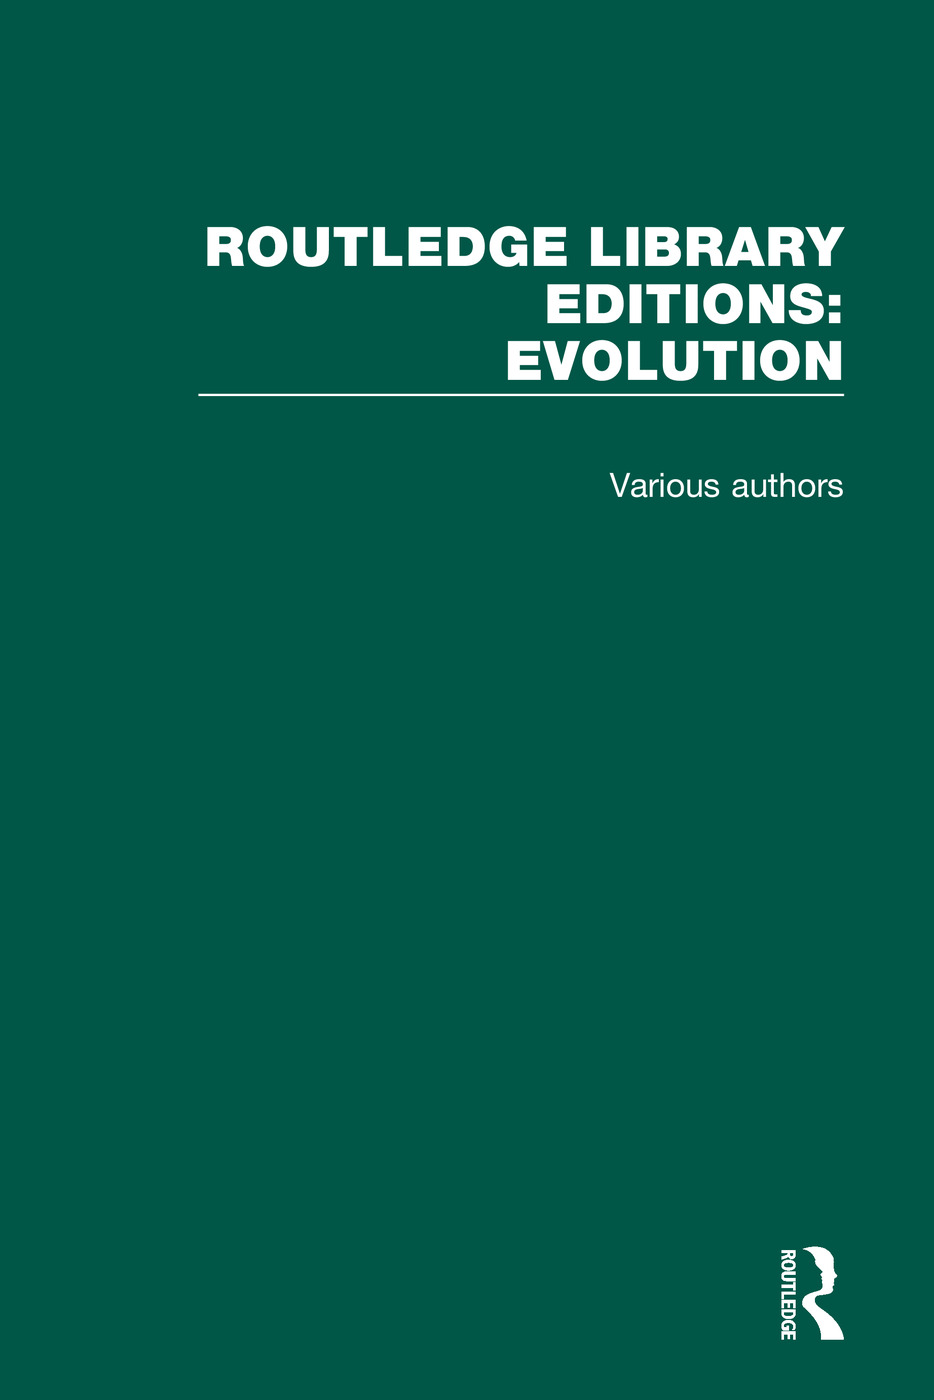 Routledge Library Editions: Evolution book cover